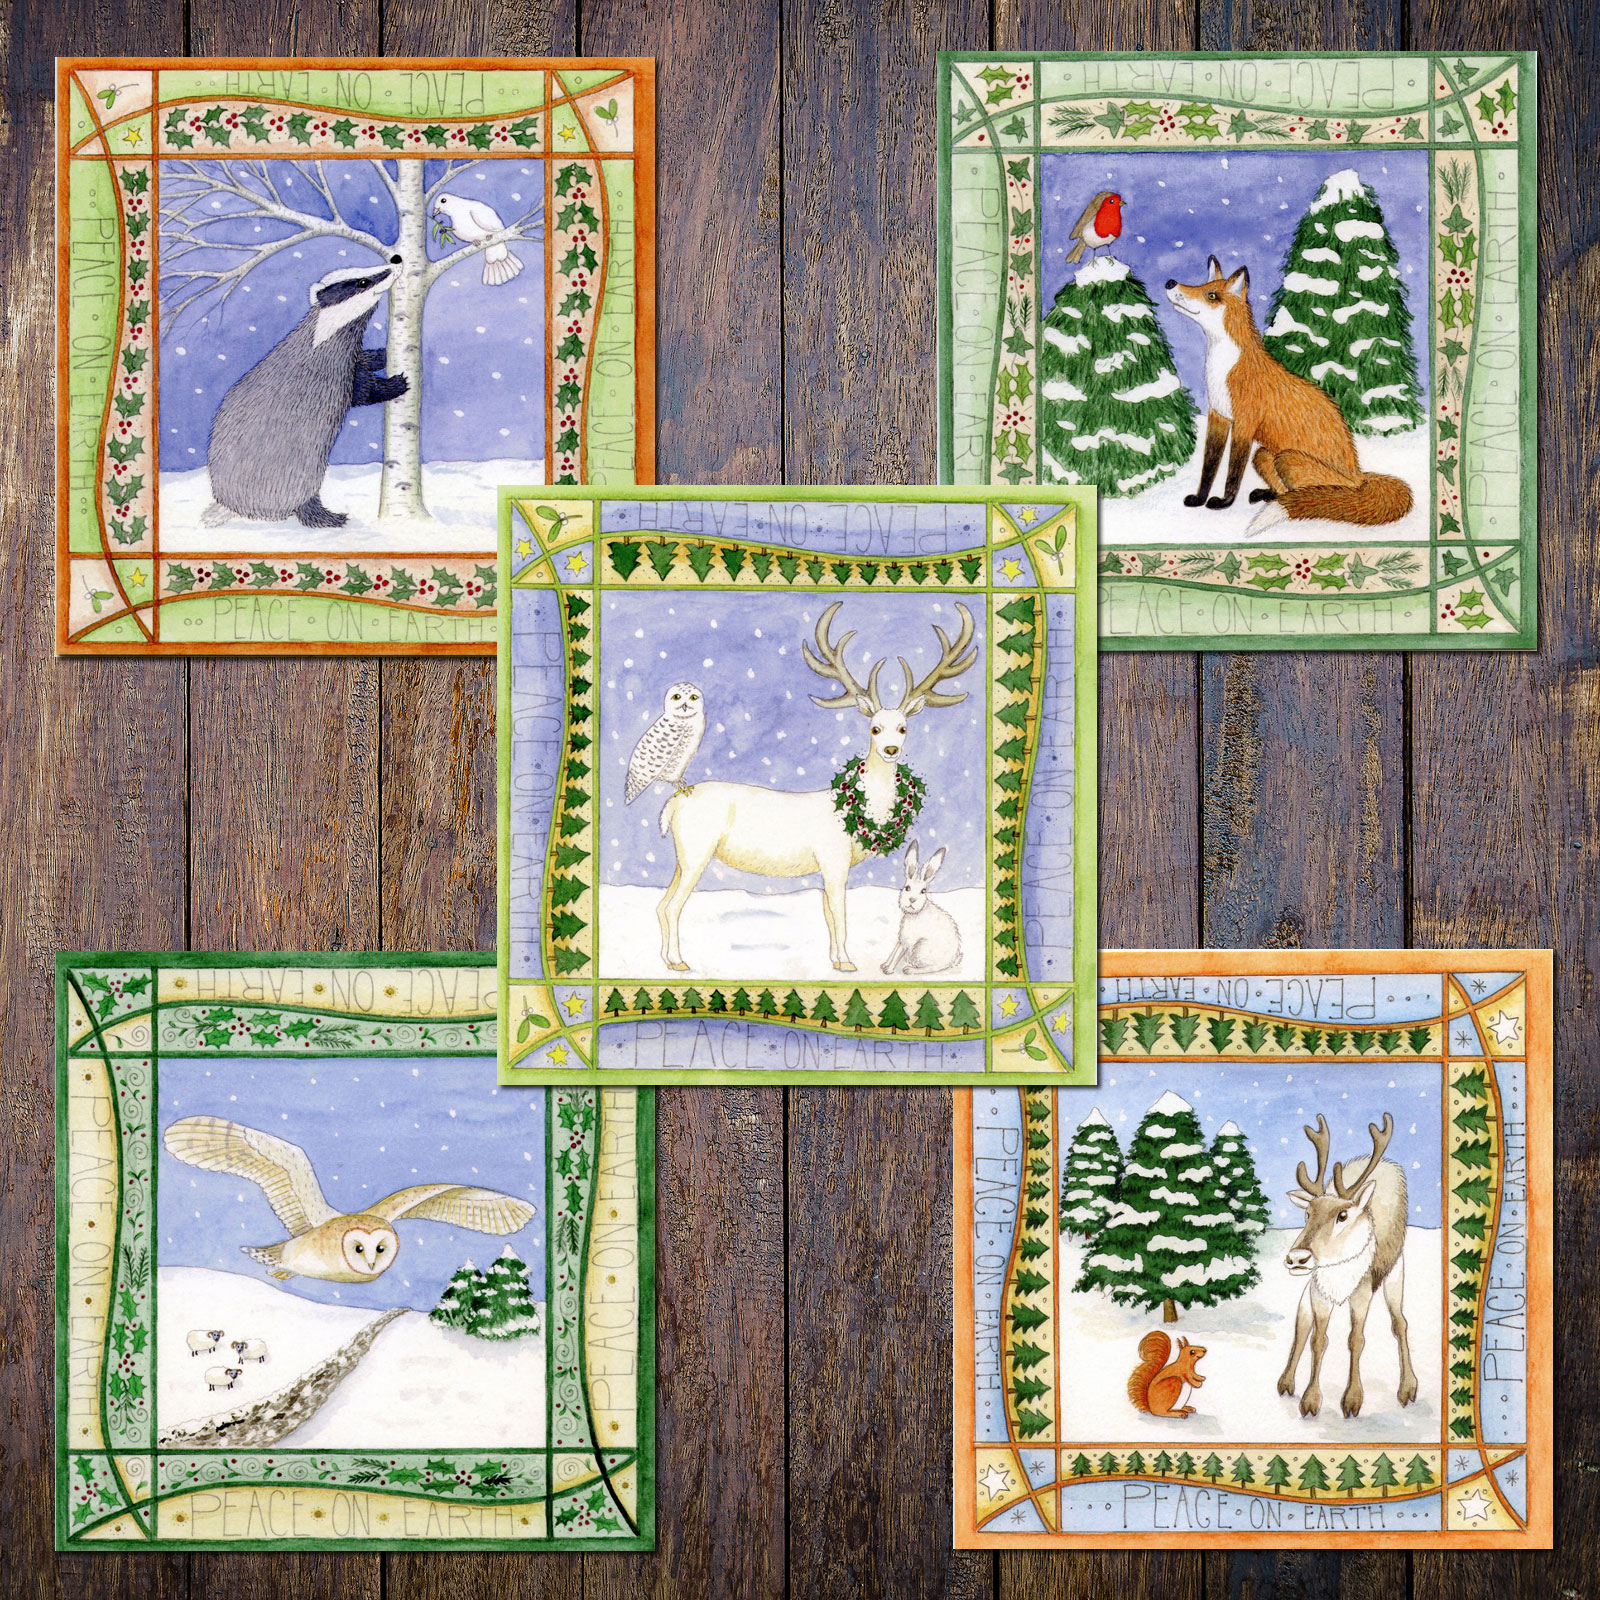 Mountain Hare Christmas Card Animal Non Religious Pagan Celtic Yuletide